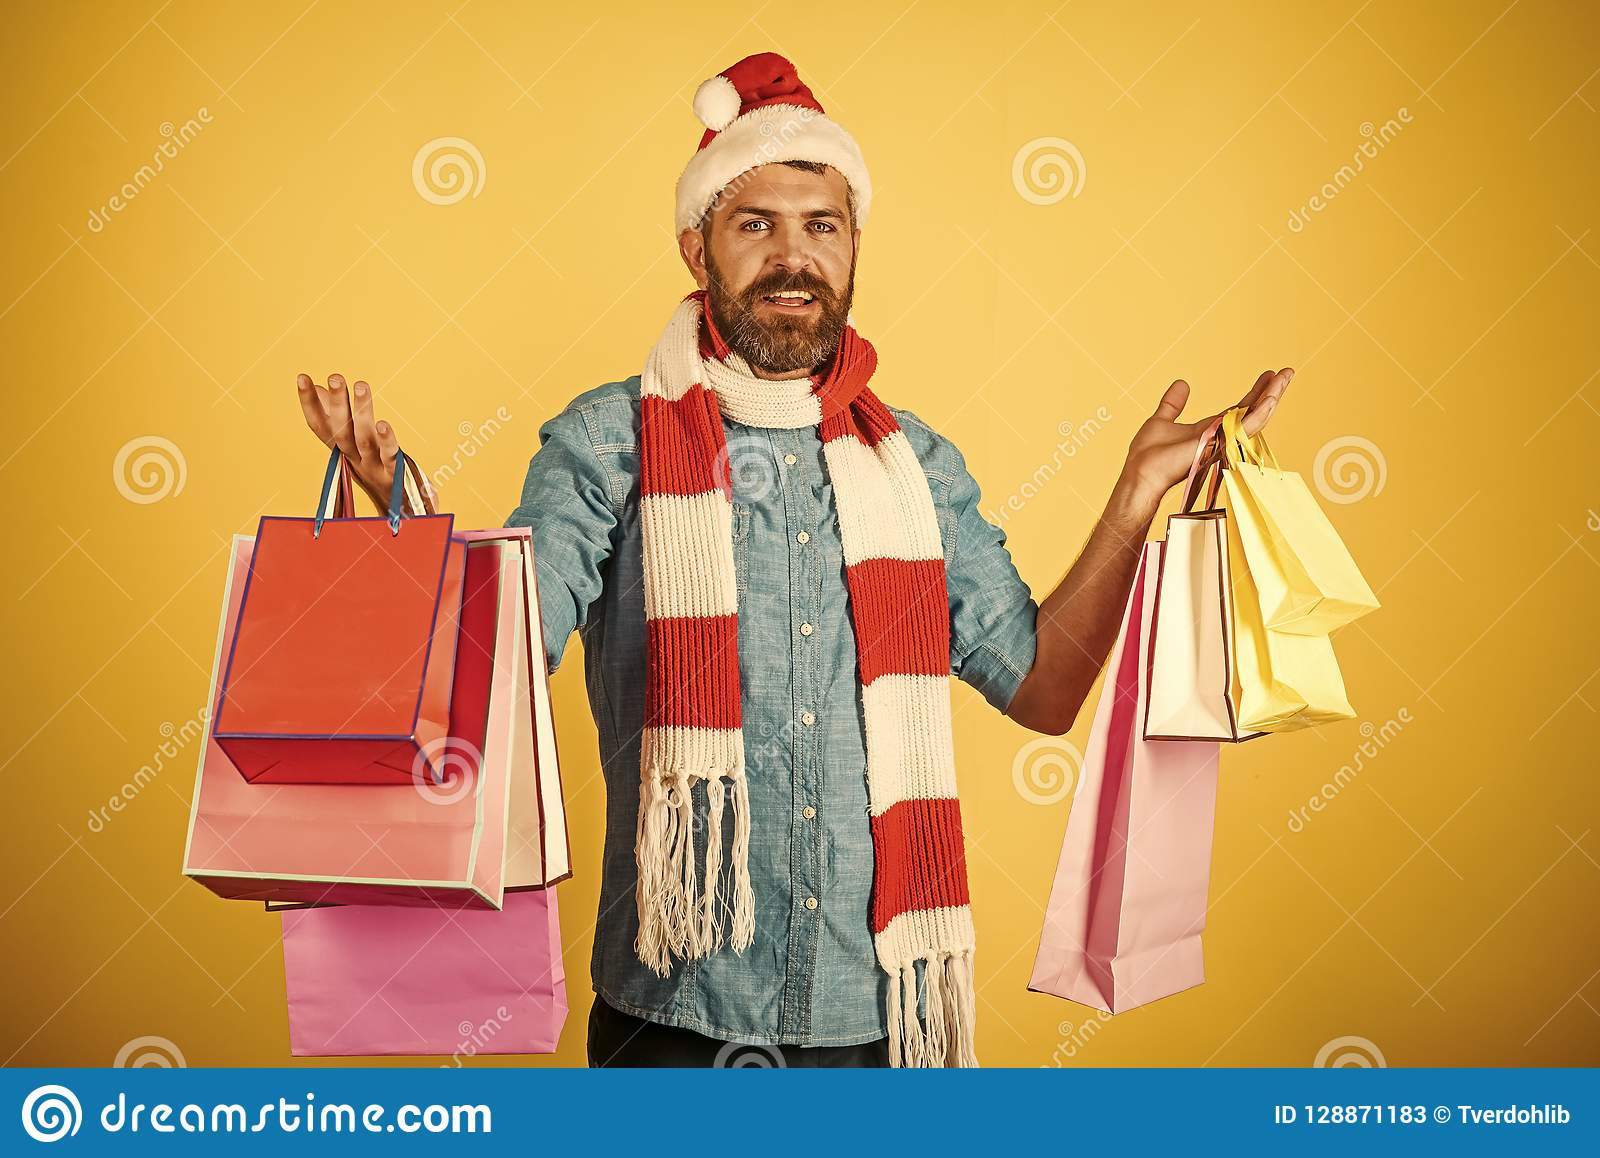 e1814d3ae7657 Christmas hipster shopper wear santa hat and scarf. Black friday sale  concept. Man hold shopping bags on yellow background. New year